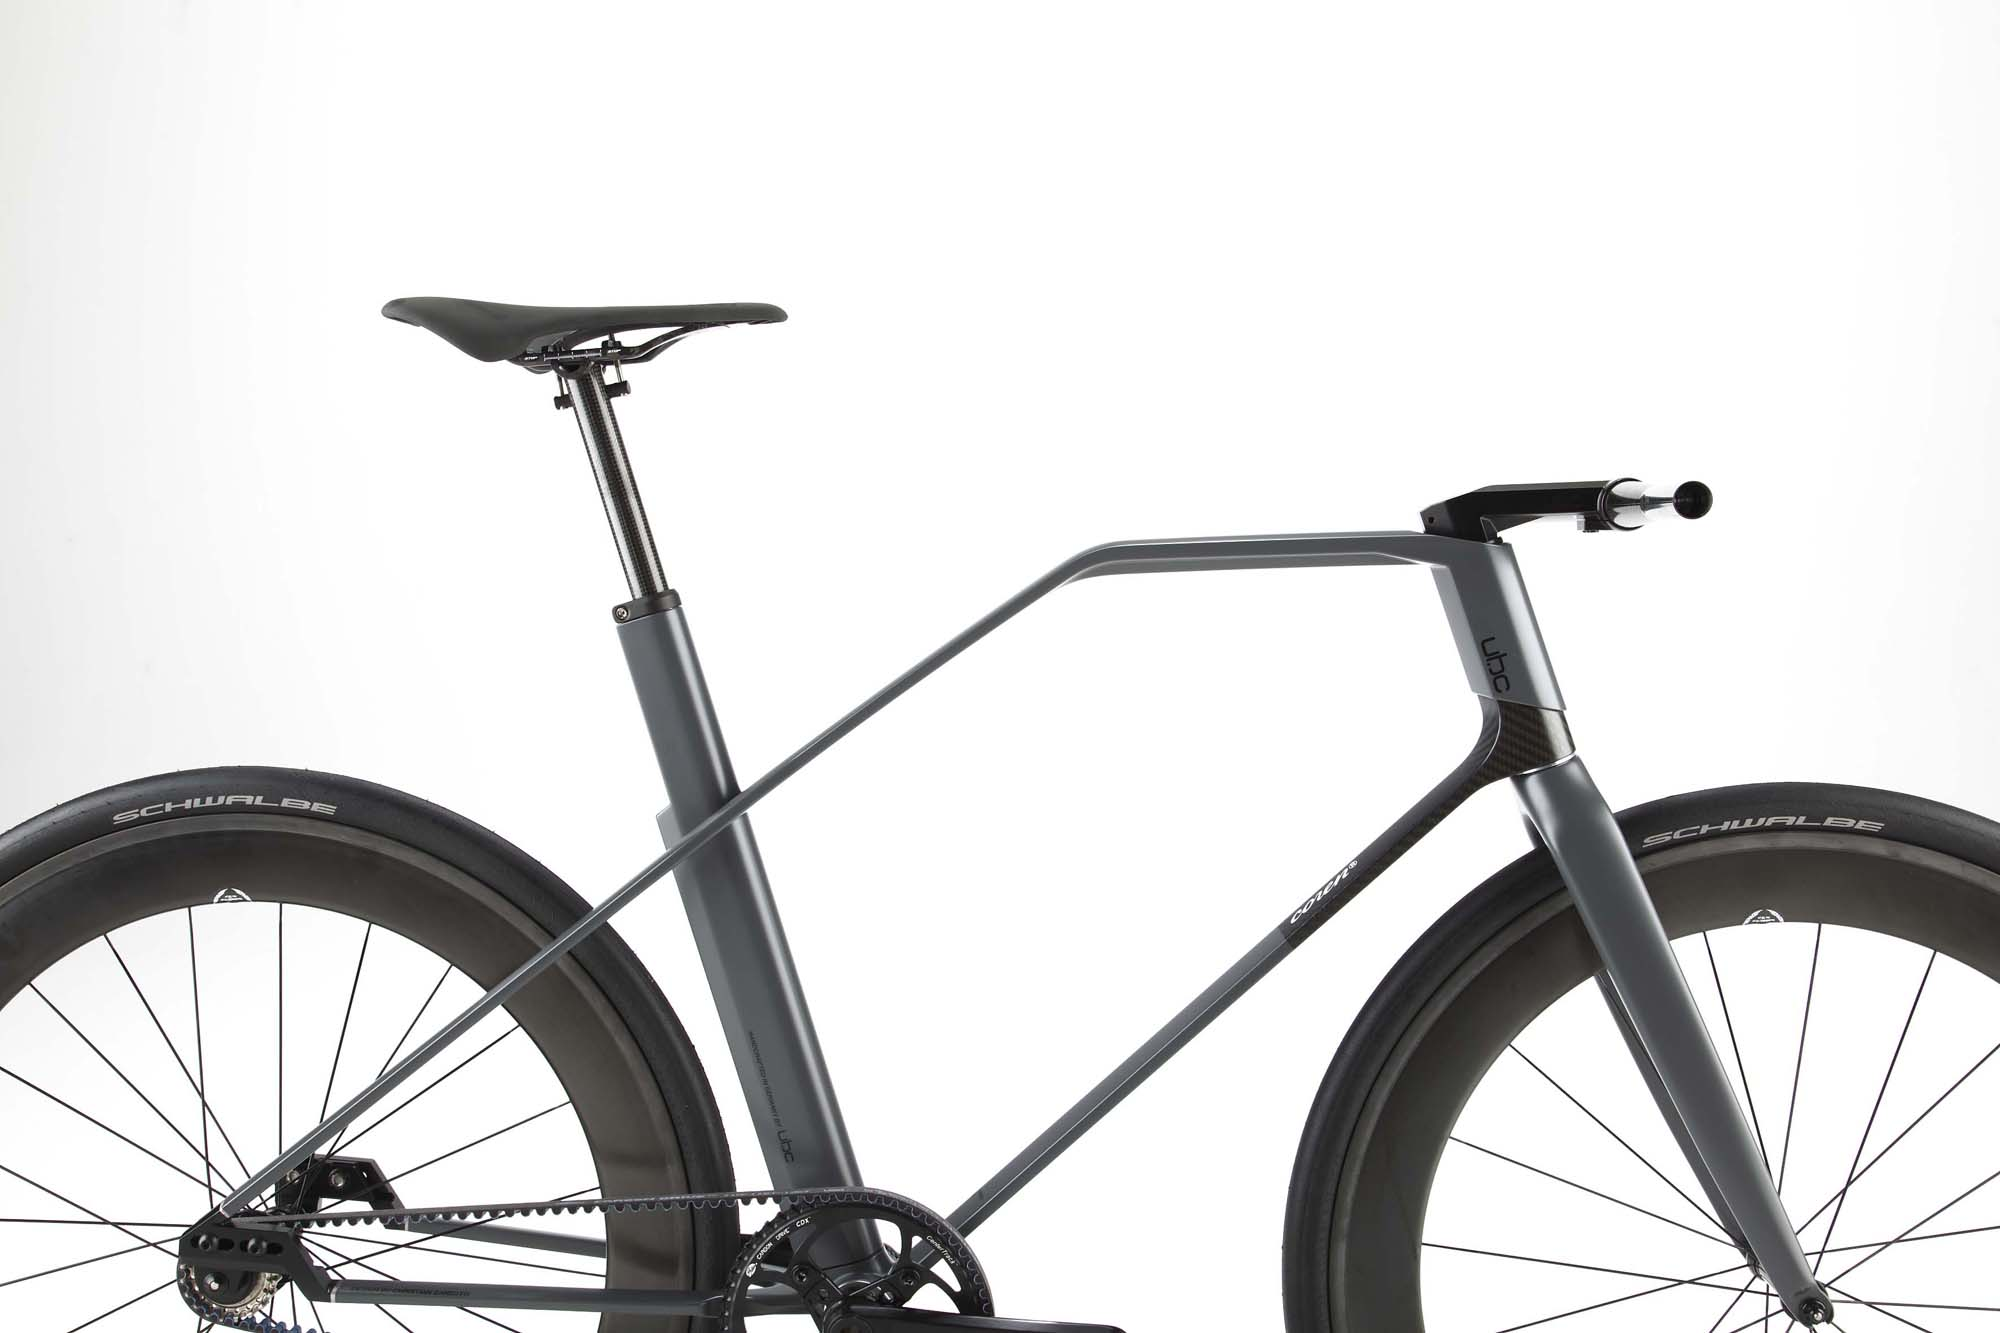 COREN FIXED GEAR – ZANZOTTI INDUSTRIAL DESIGN